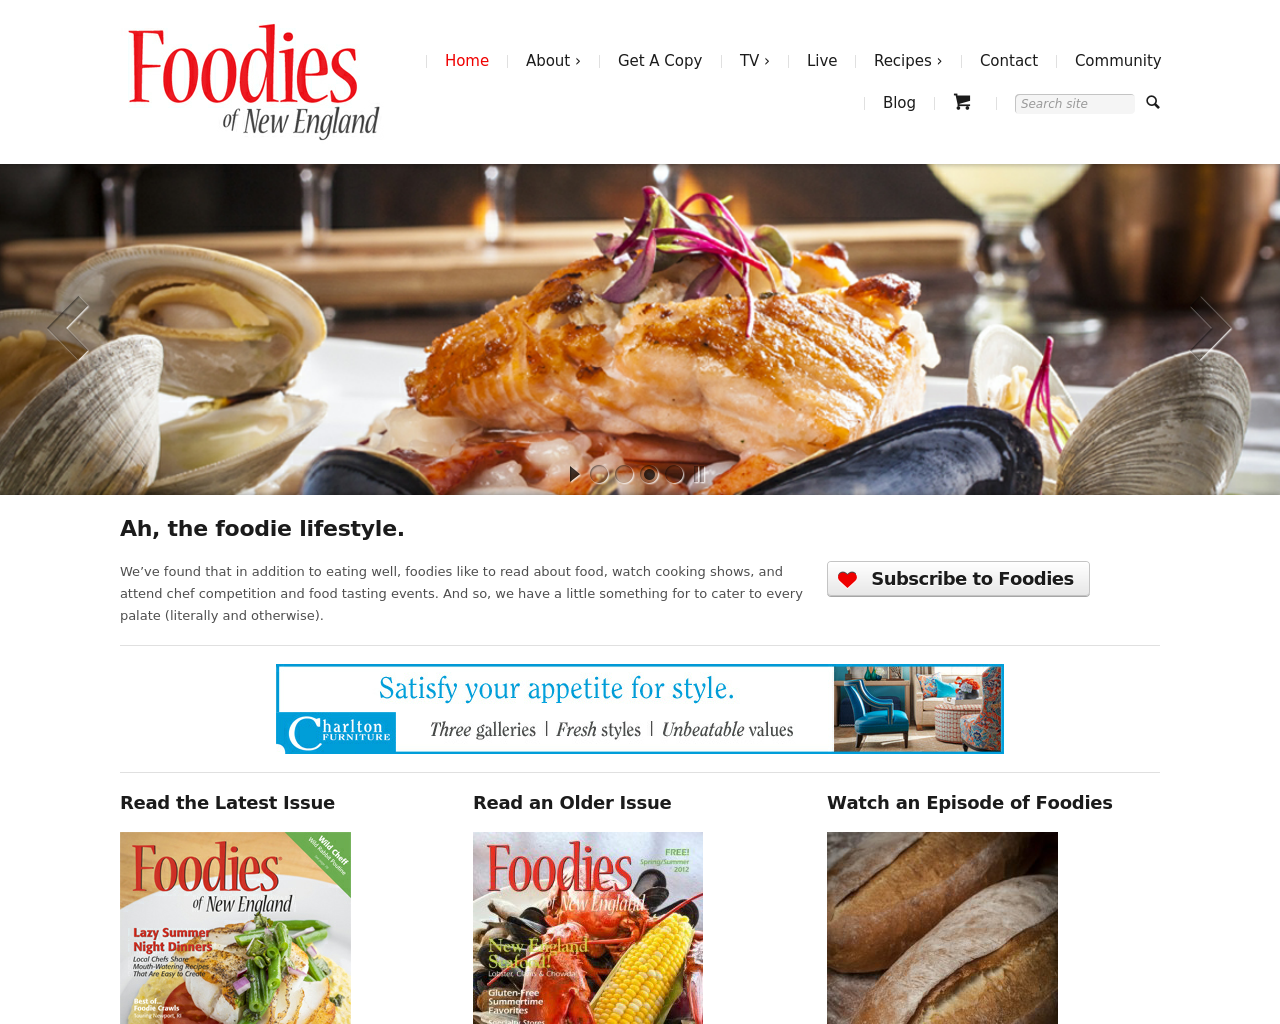 Foodies-of-New-England-Advertising-Reviews-Pricing